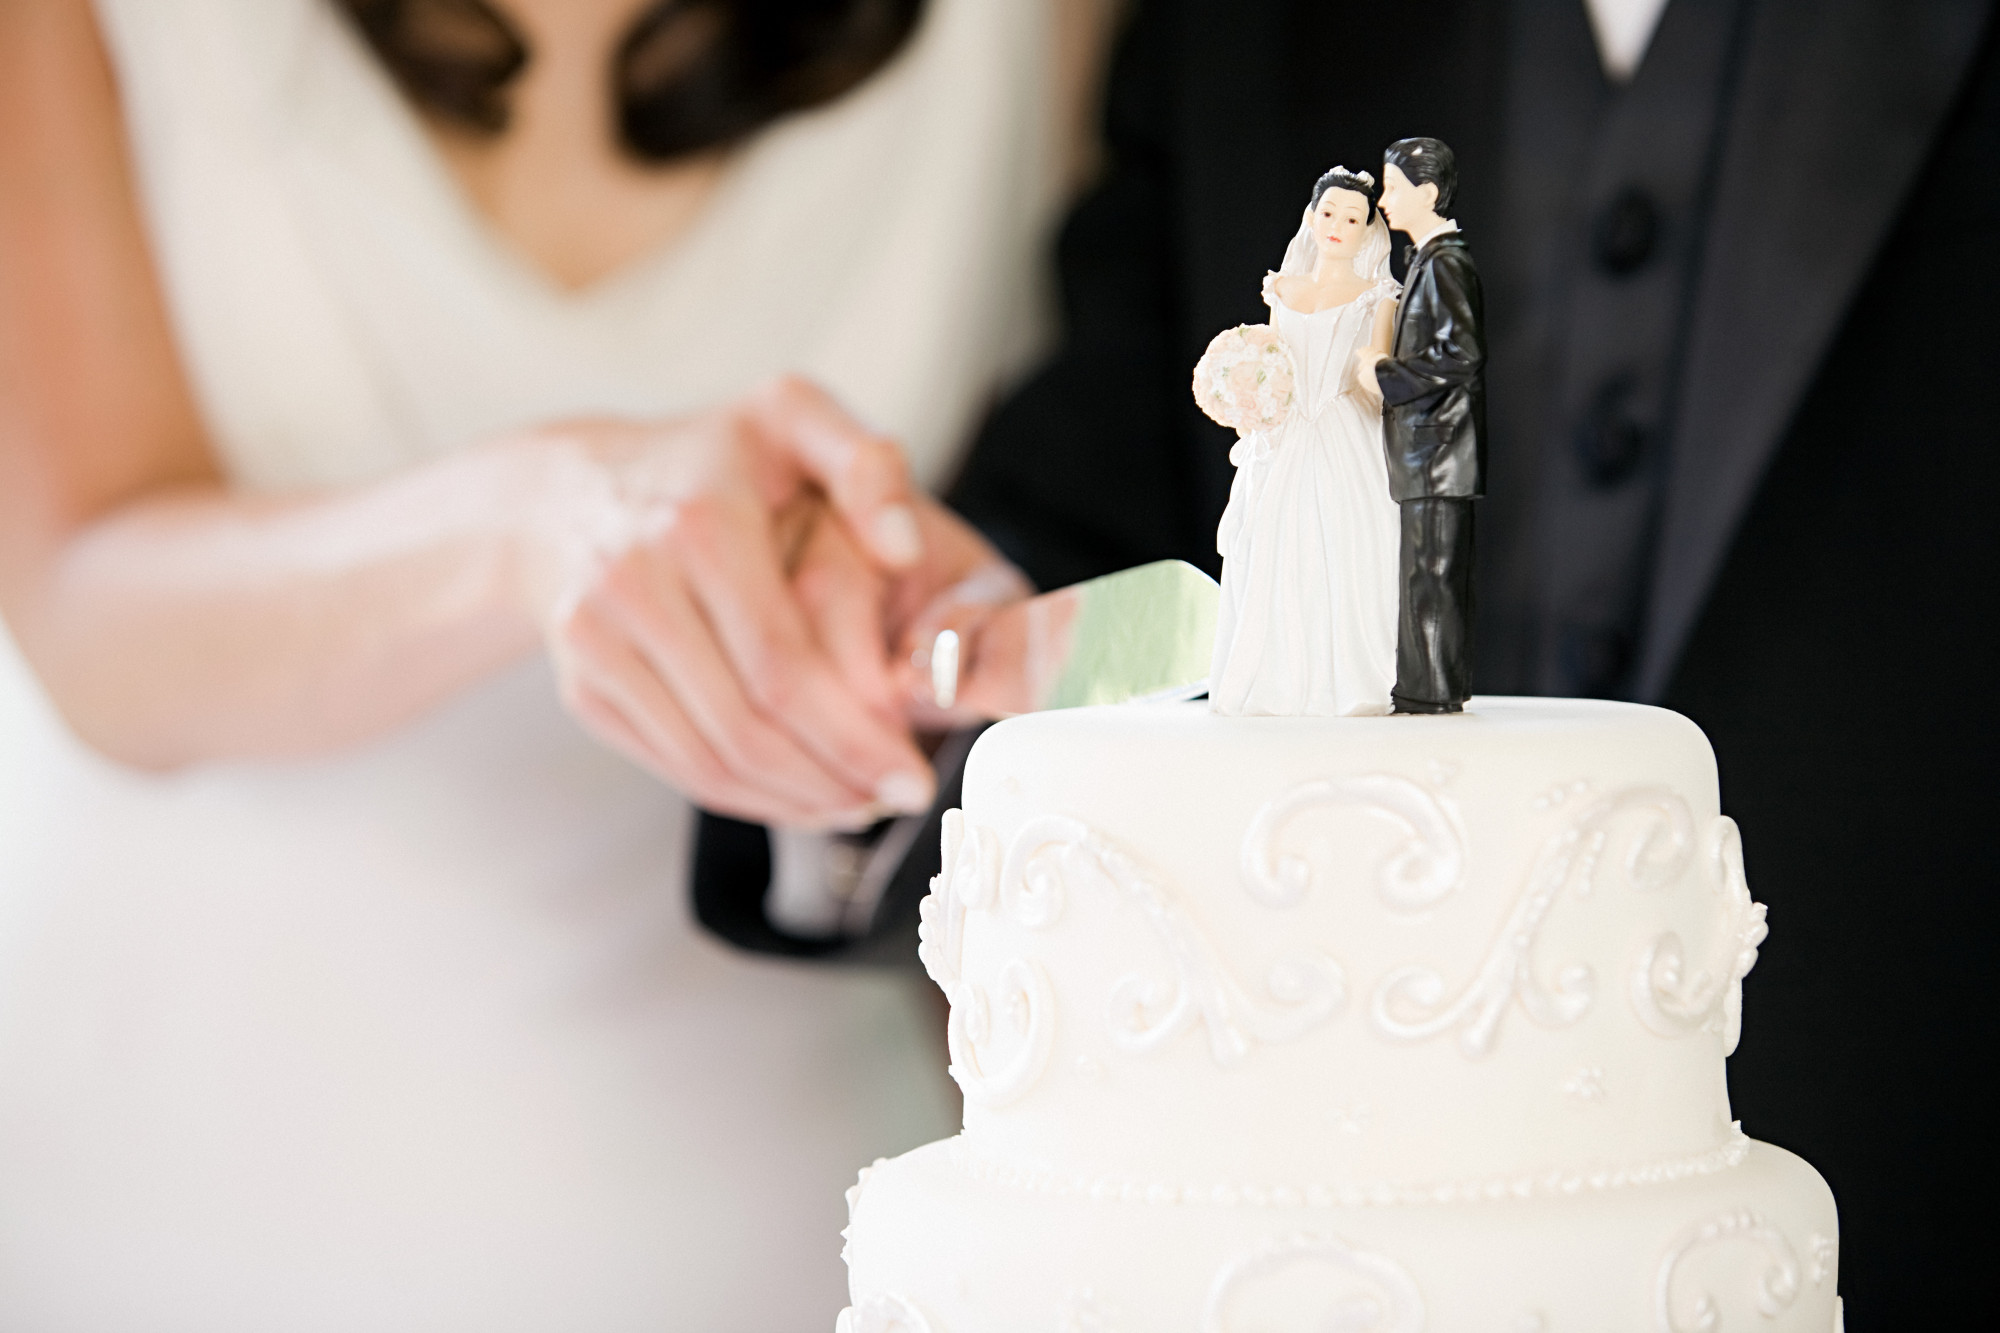 5 Fun (and Yummy) Things To Do With Your Leftover Wedding